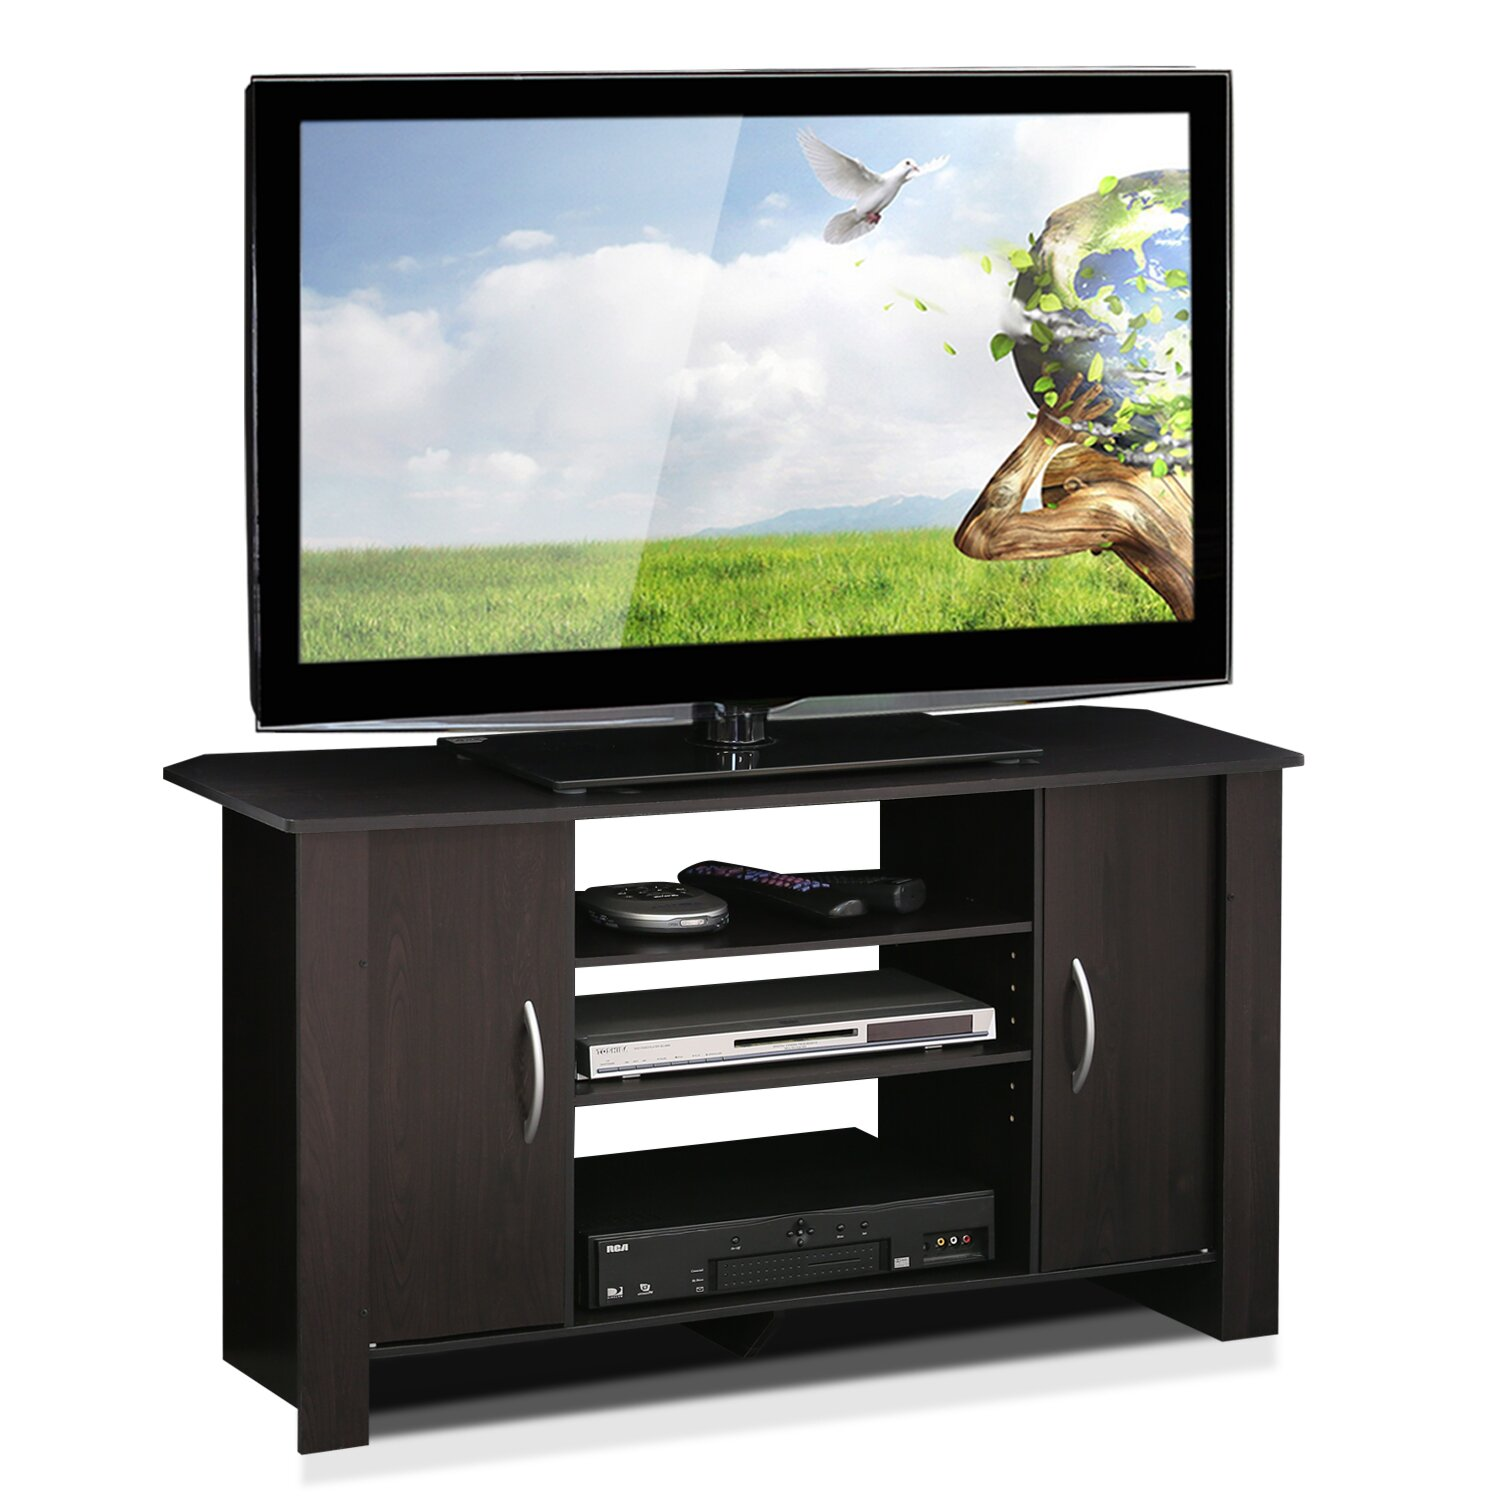 Furinno Econ Tv Stand Reviews Wayfair